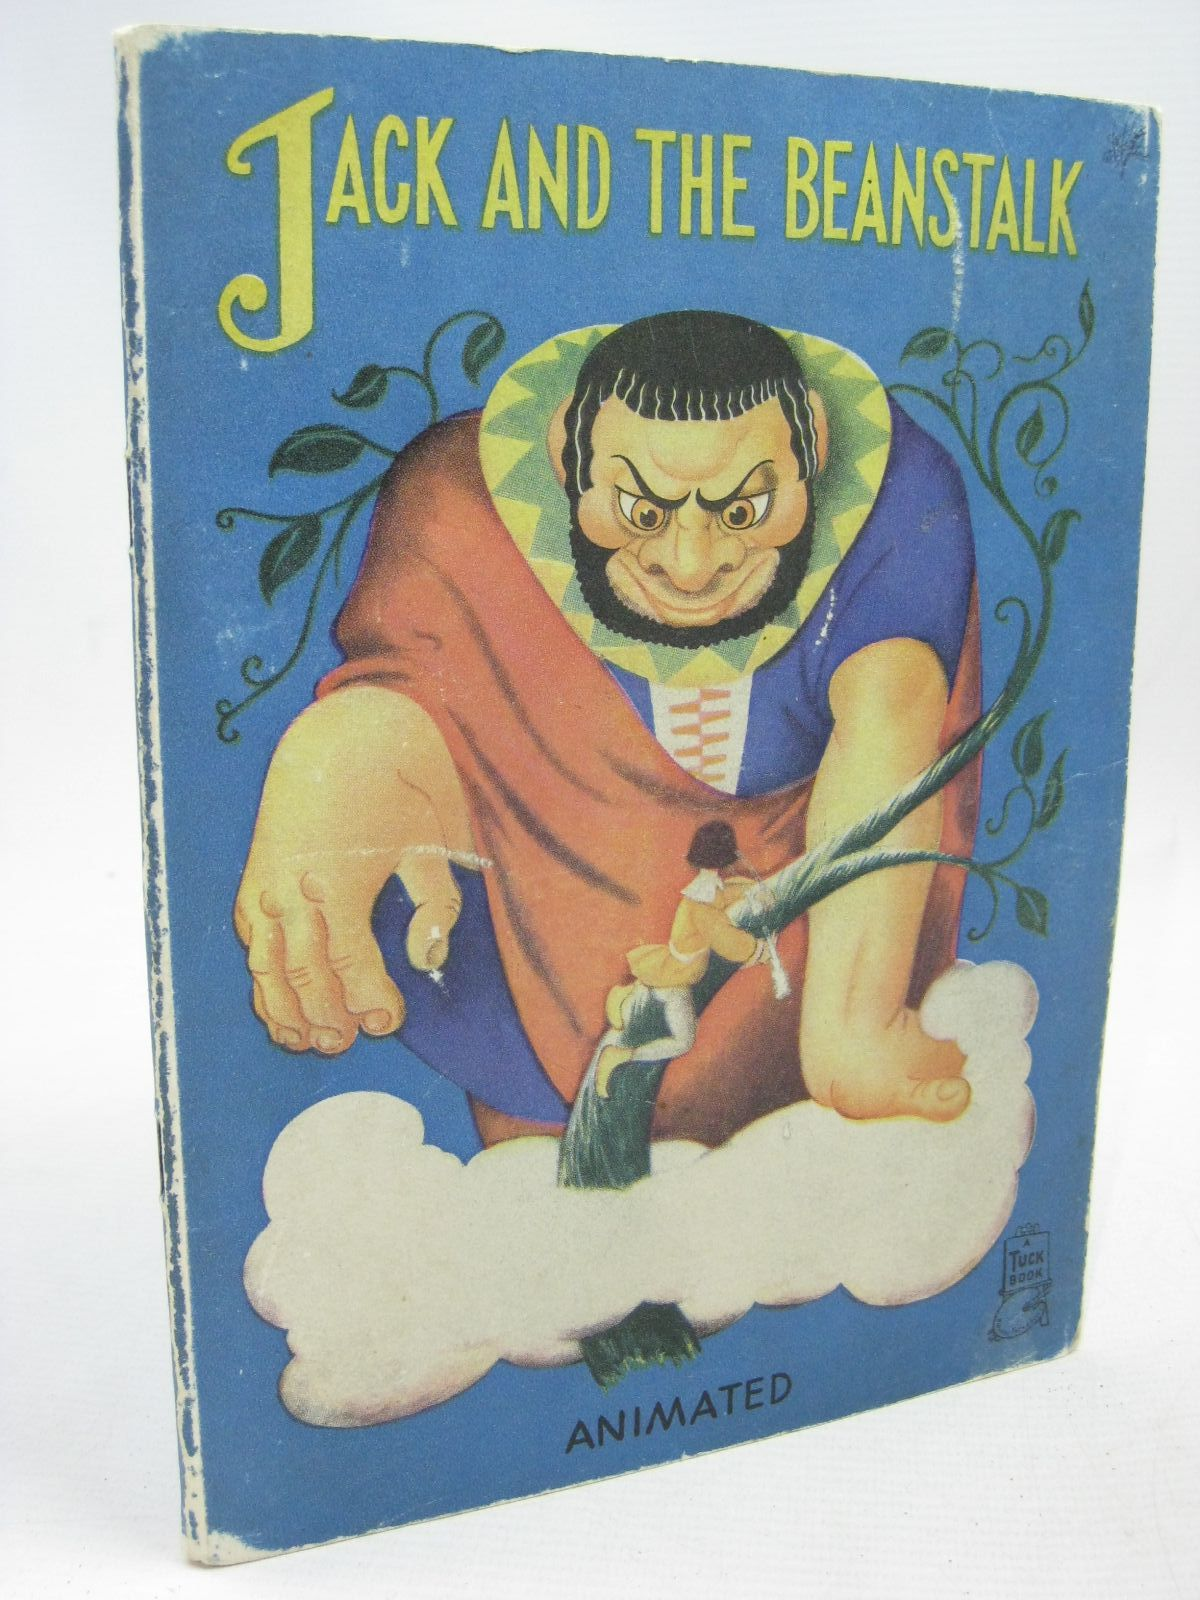 Photo of JACK AND THE BEANSTALK ANIMATED PICTURES published by Raphael Tuck & Sons Ltd. (STOCK CODE: 1316147)  for sale by Stella & Rose's Books